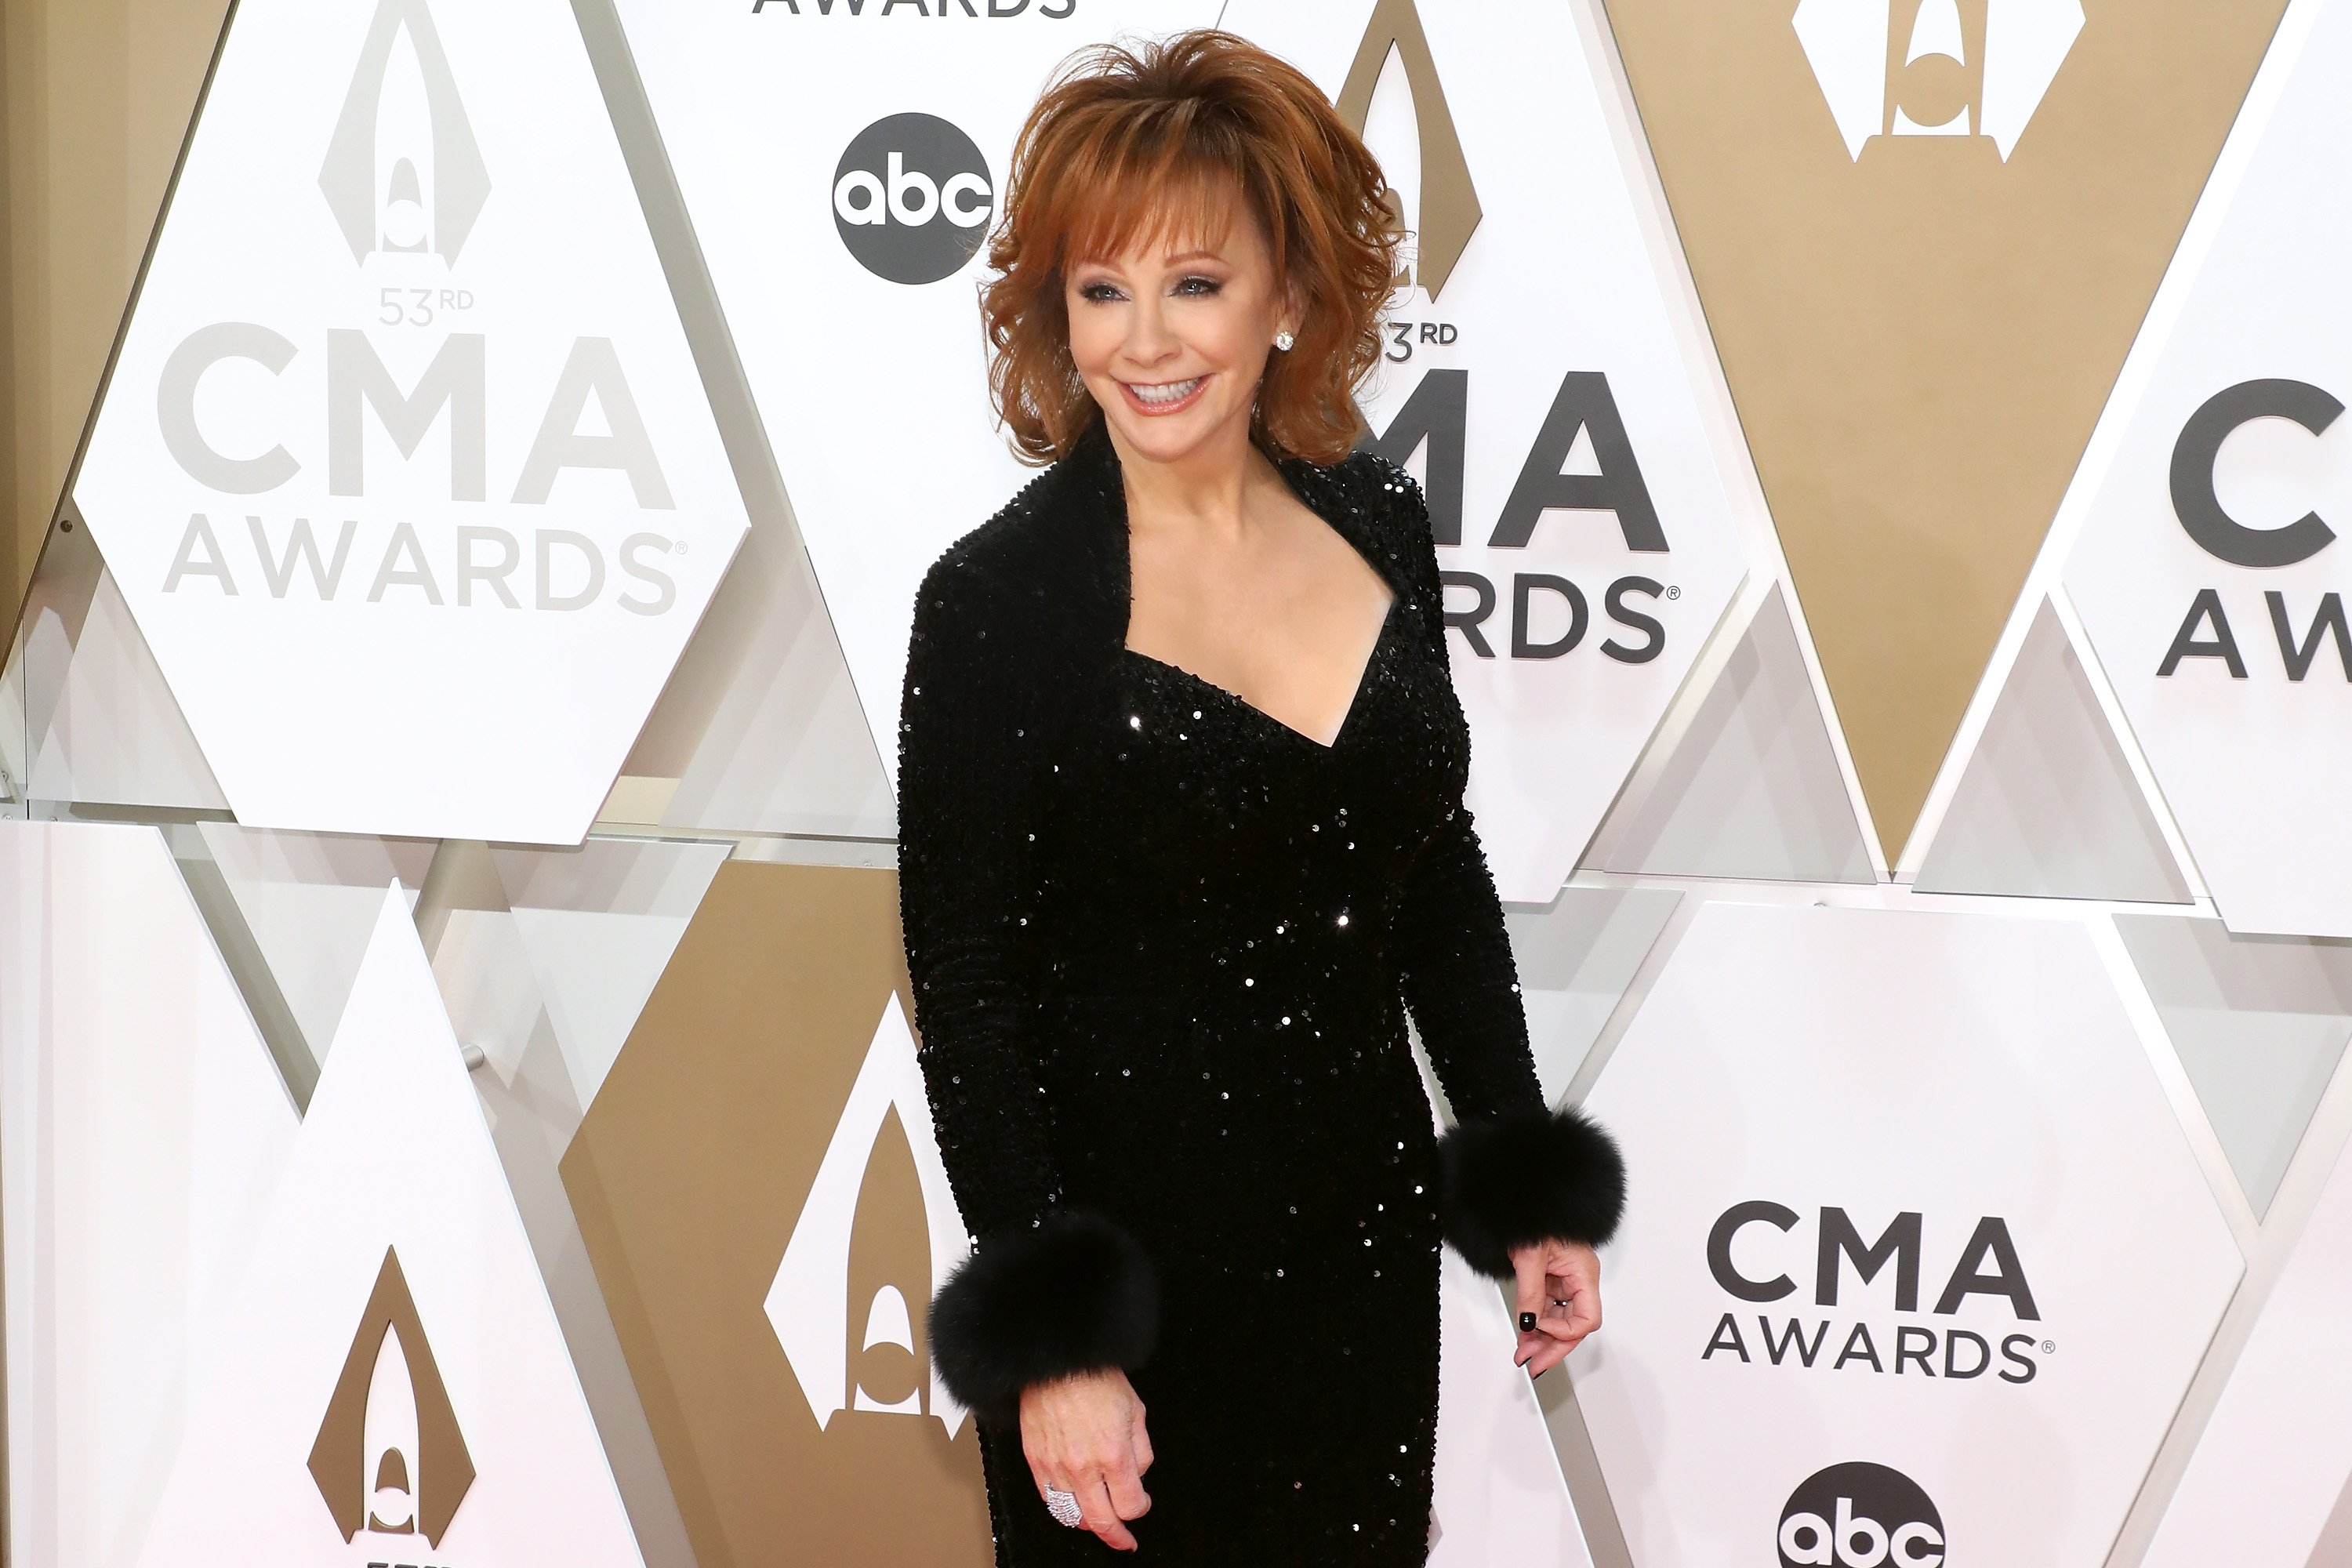 Reba McEntire at the 2019 CMA Awards hosted in Nashville, Tennessee. Photo: Getty Images